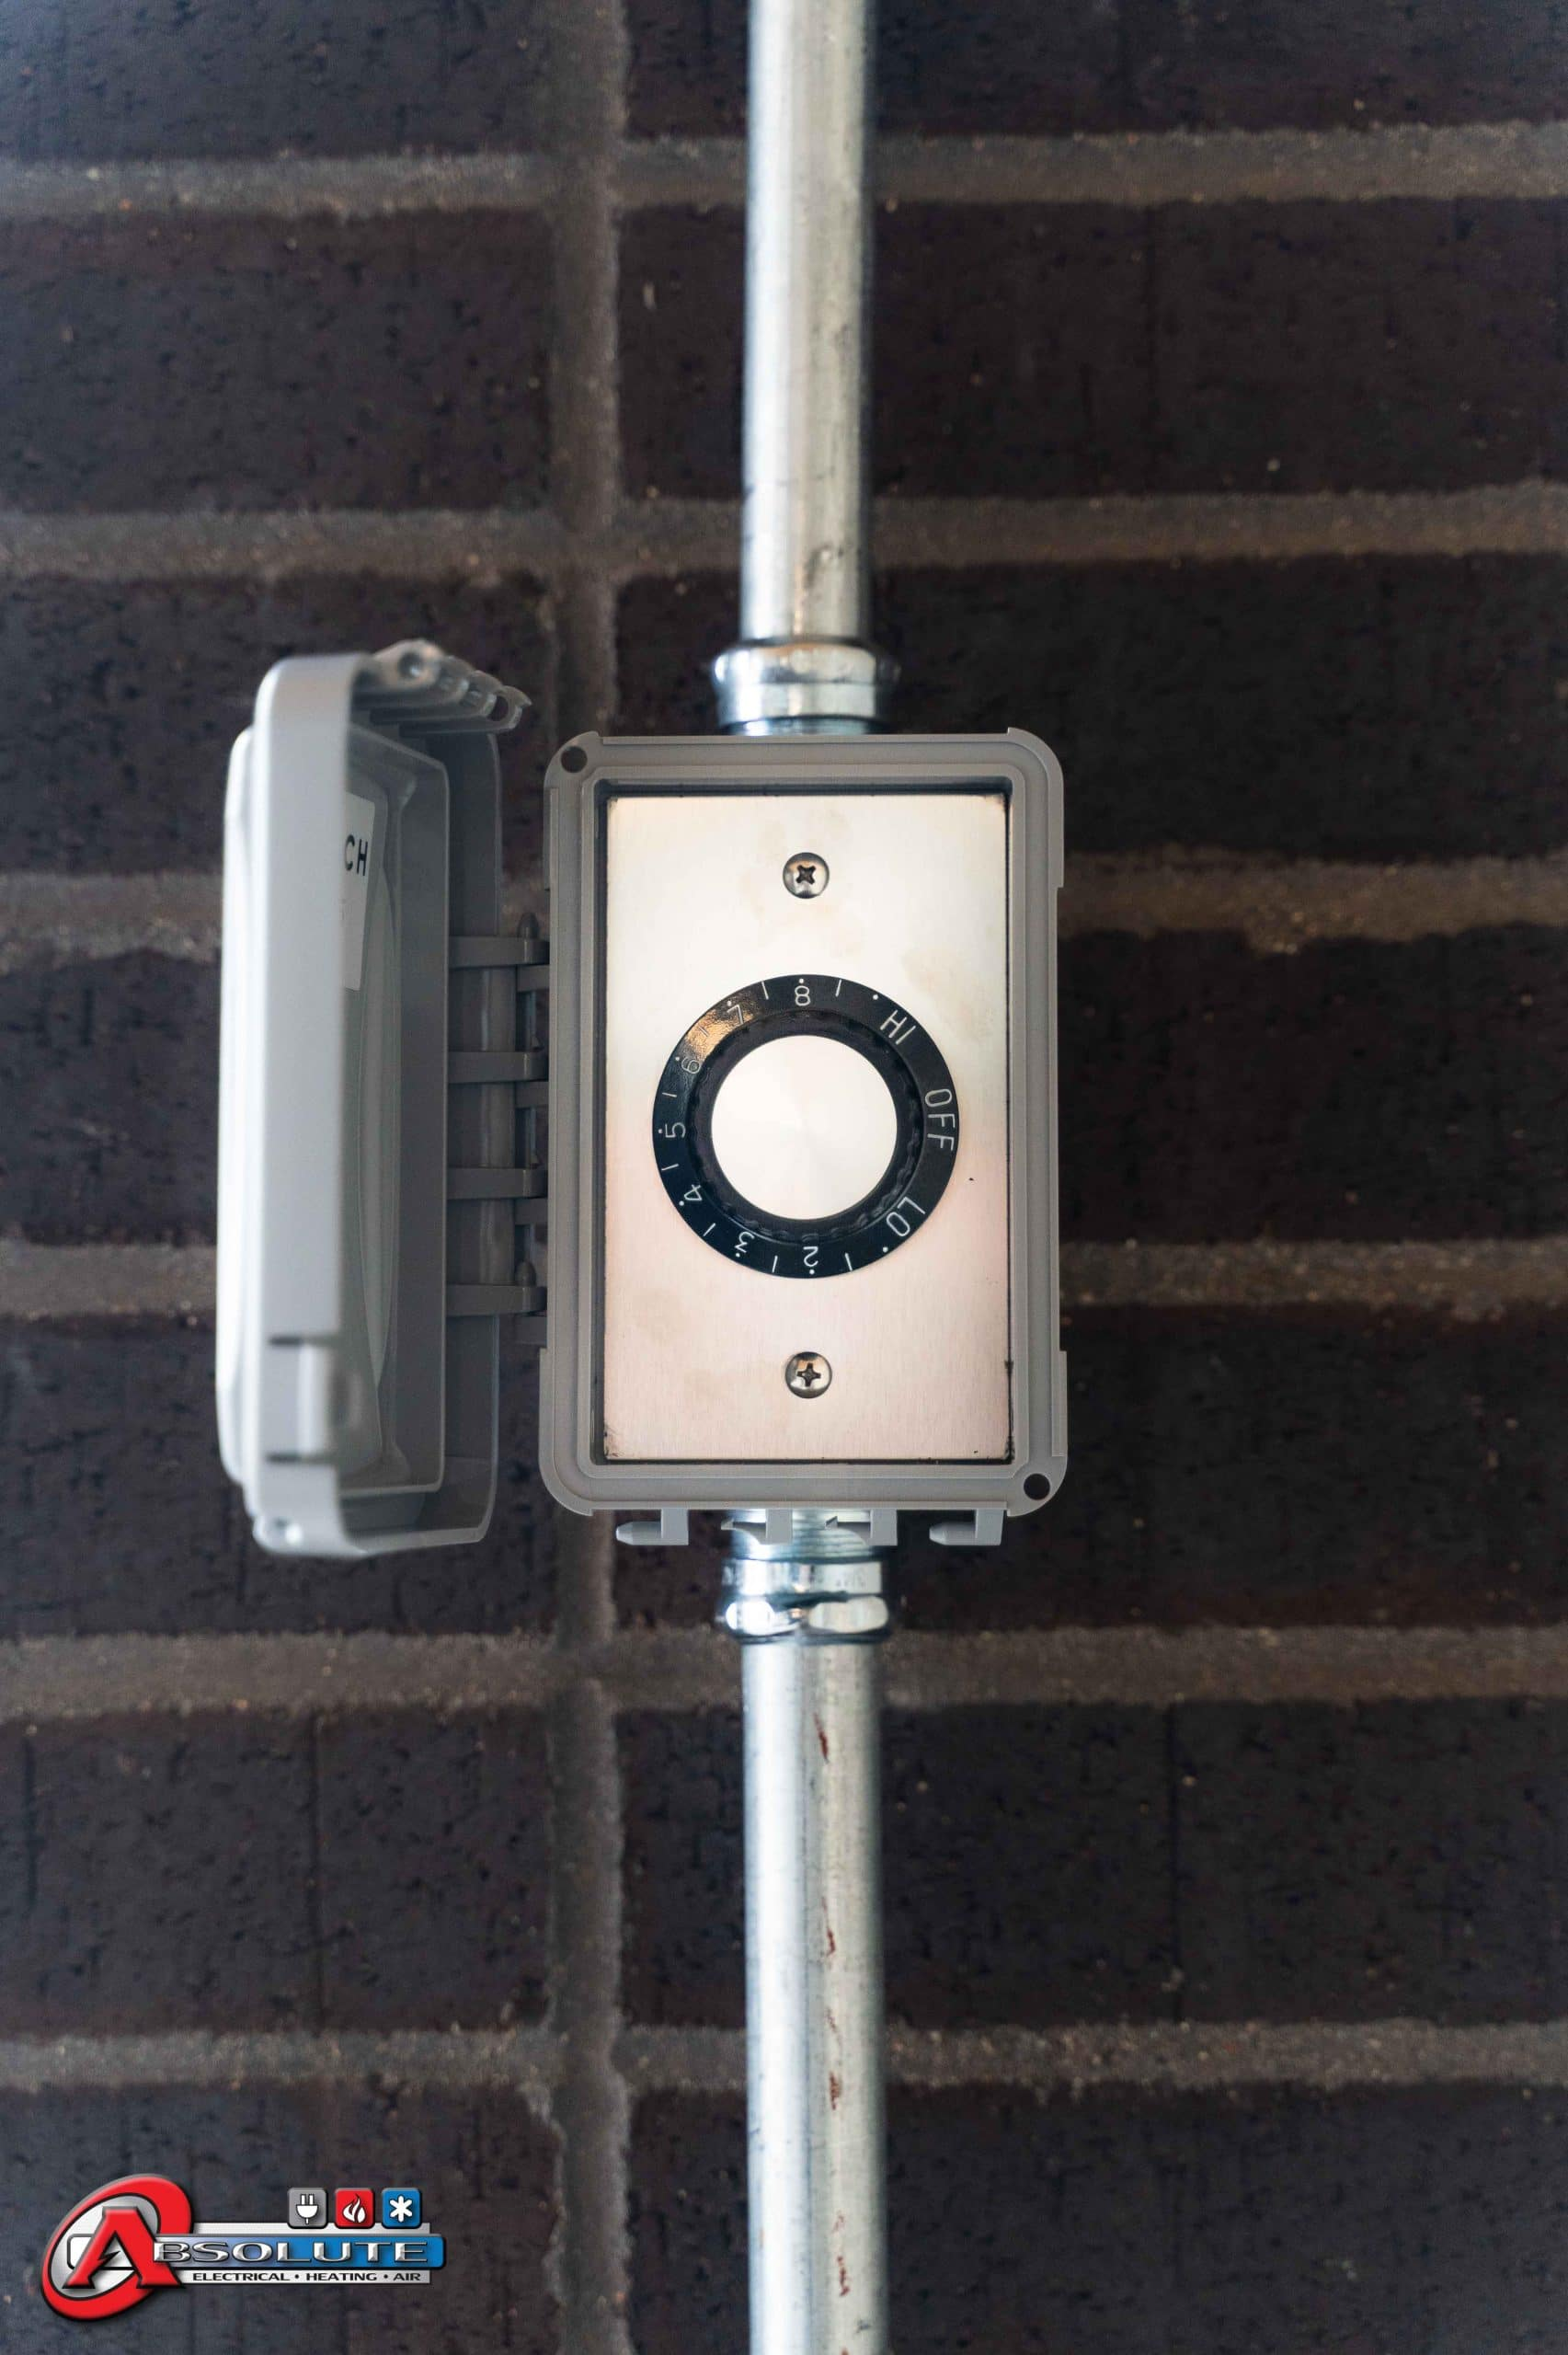 Patio-heater-value-Controller-switch